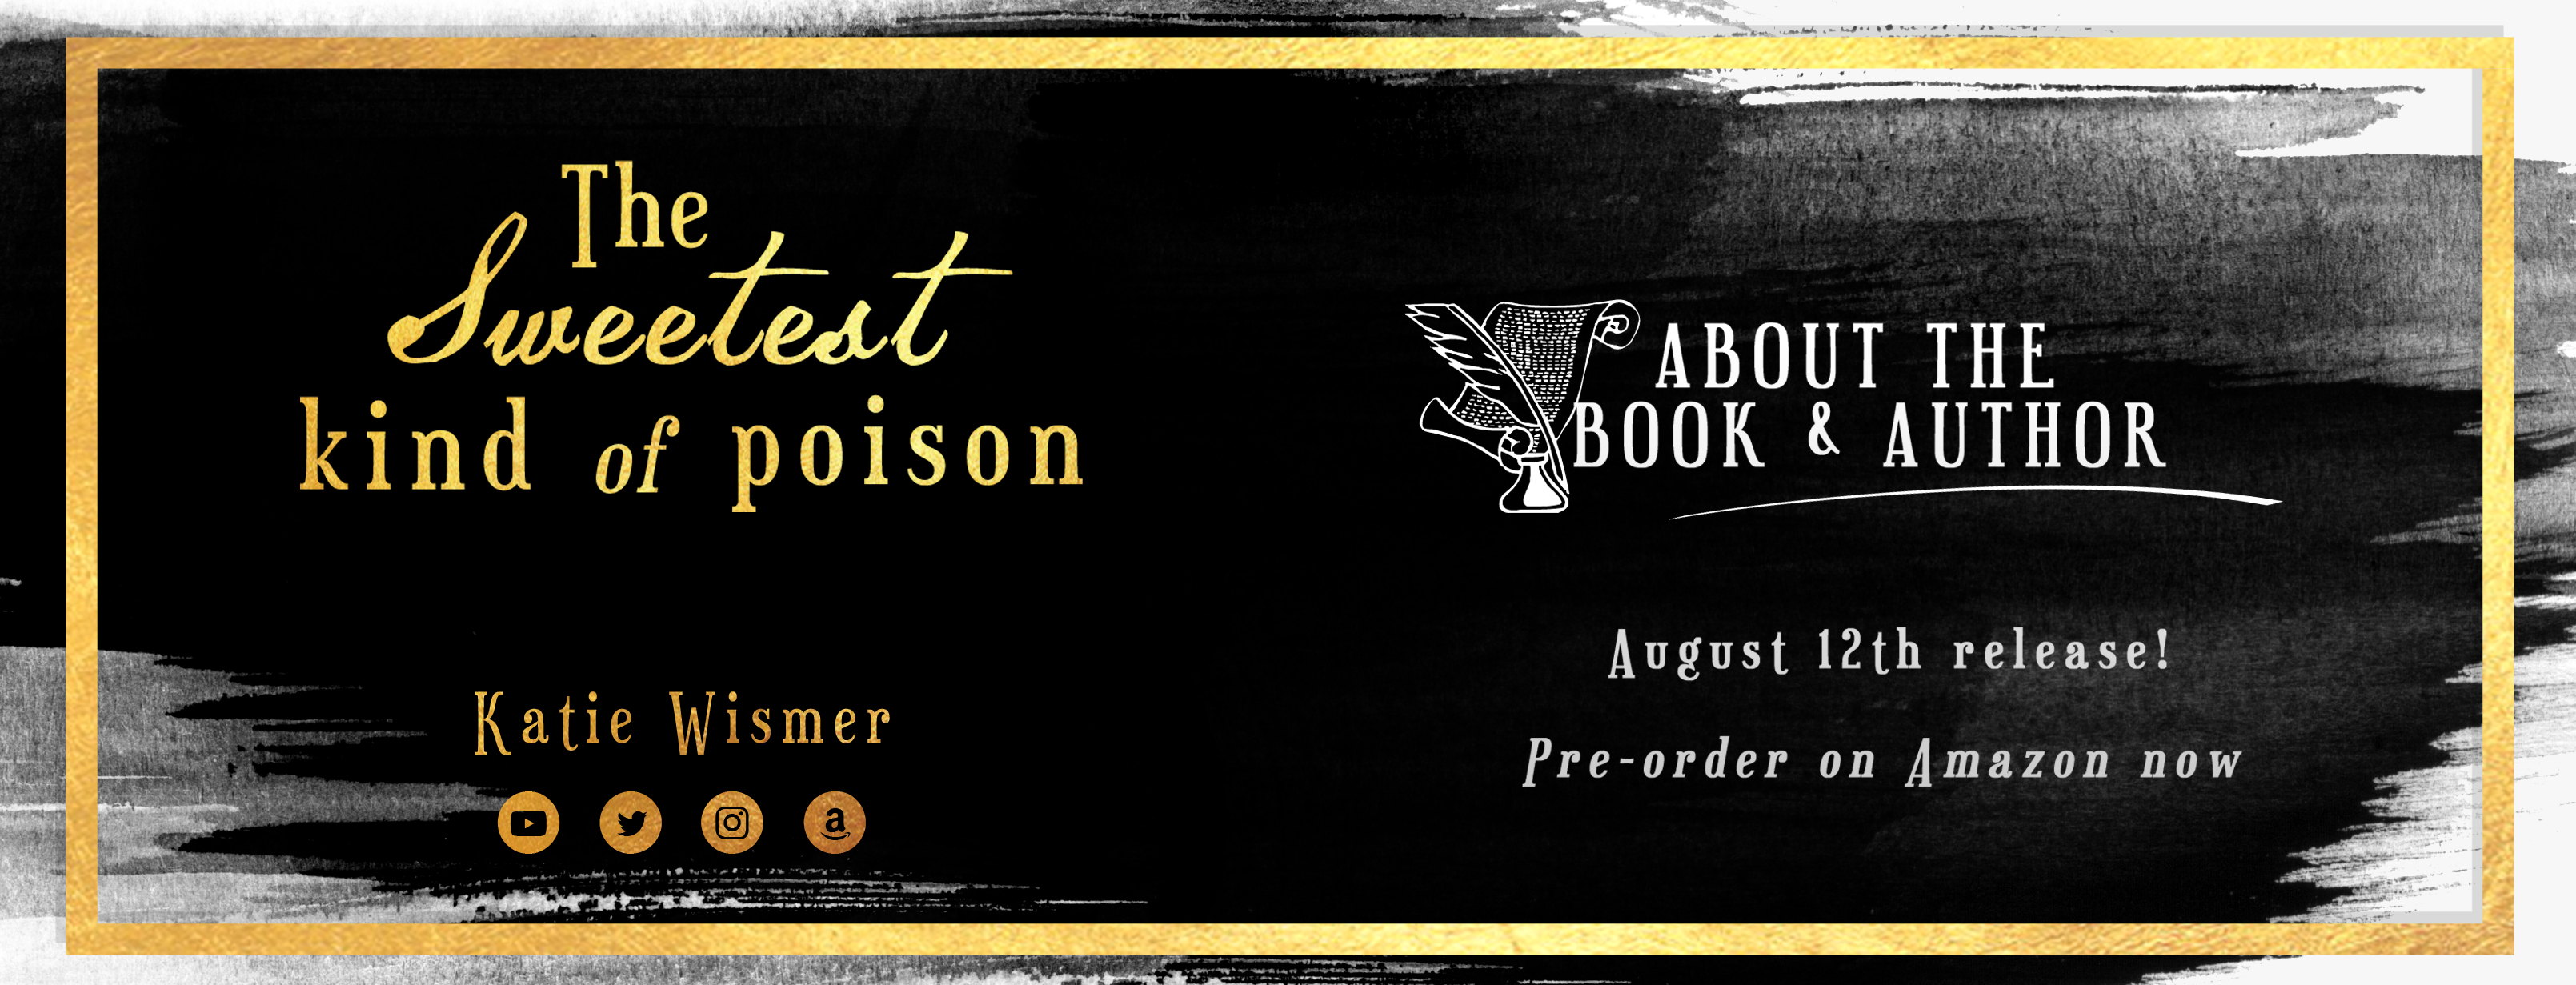 The Sweetest Kind of Poison | About the Book & Author